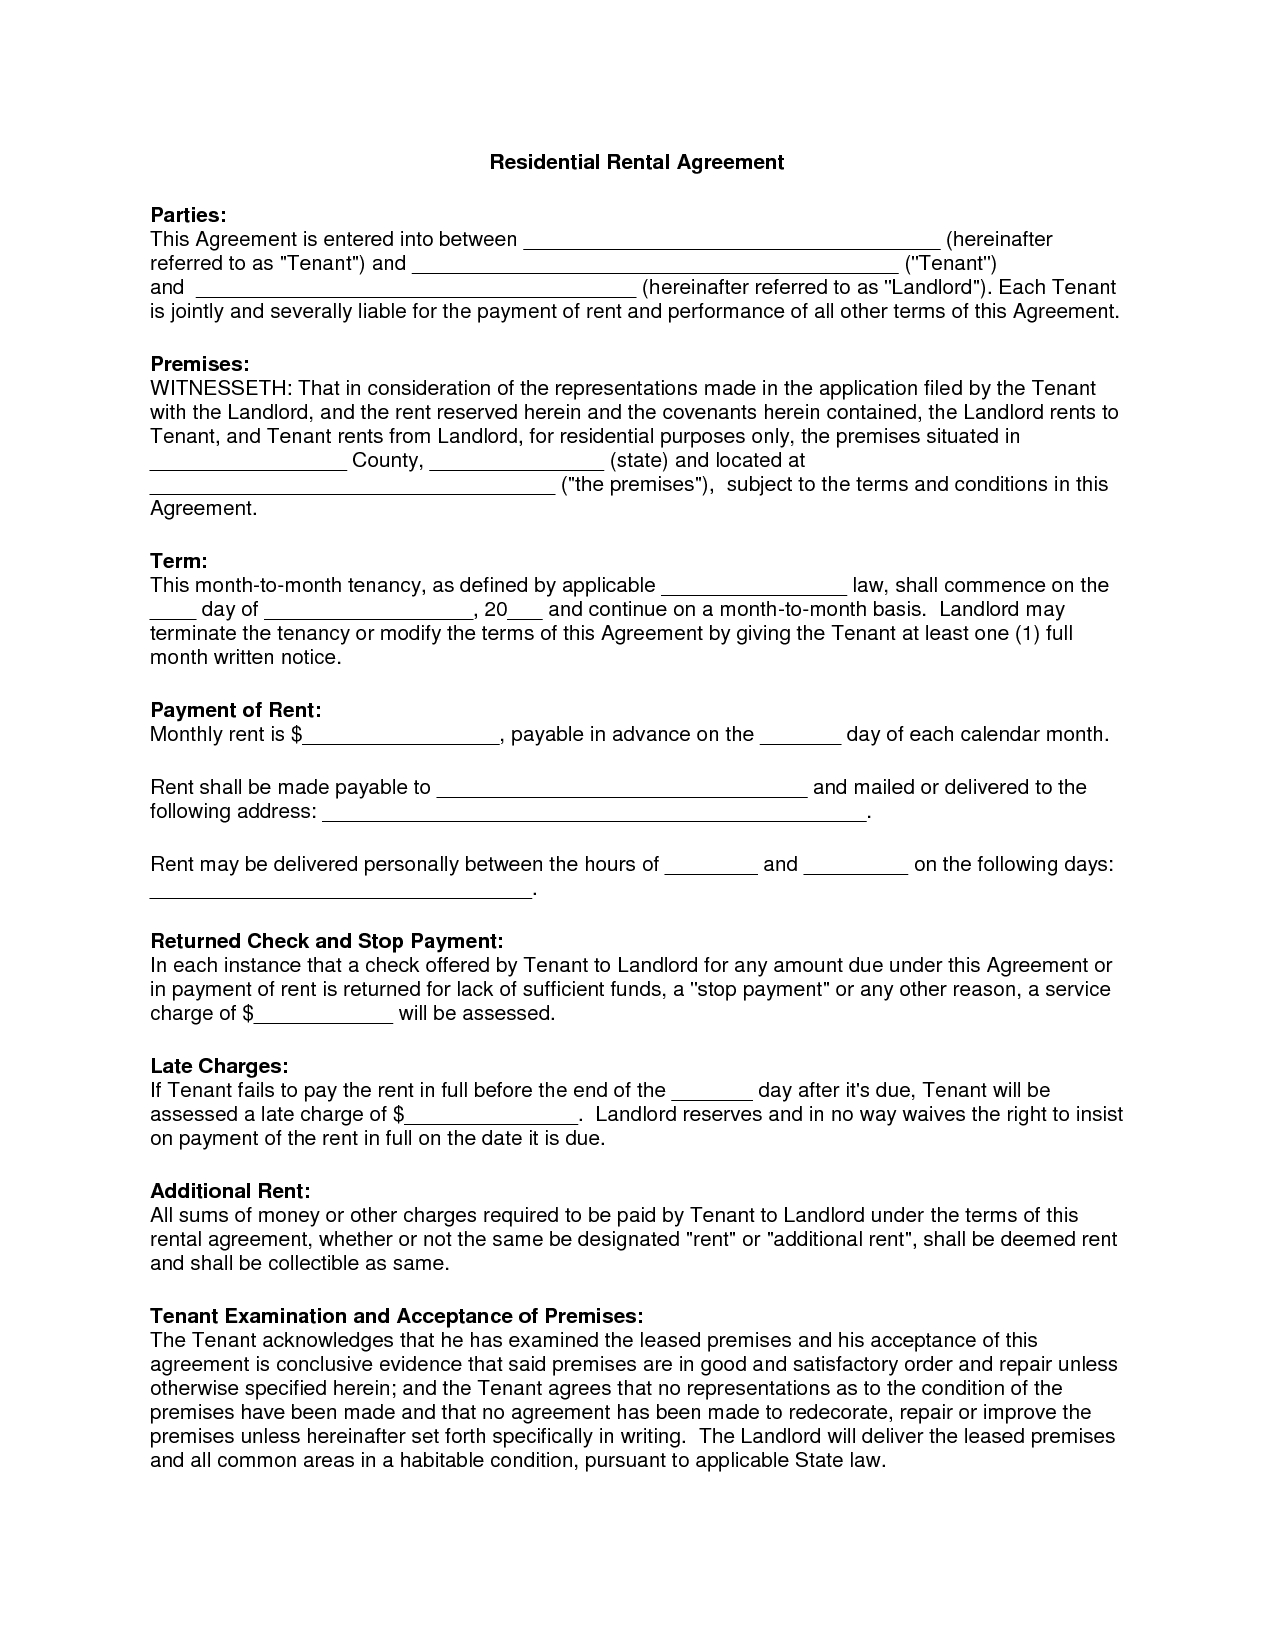 Free Copy Rental Lease Agreement | Residential Rental Agreement - Free Printable Rental Agreement